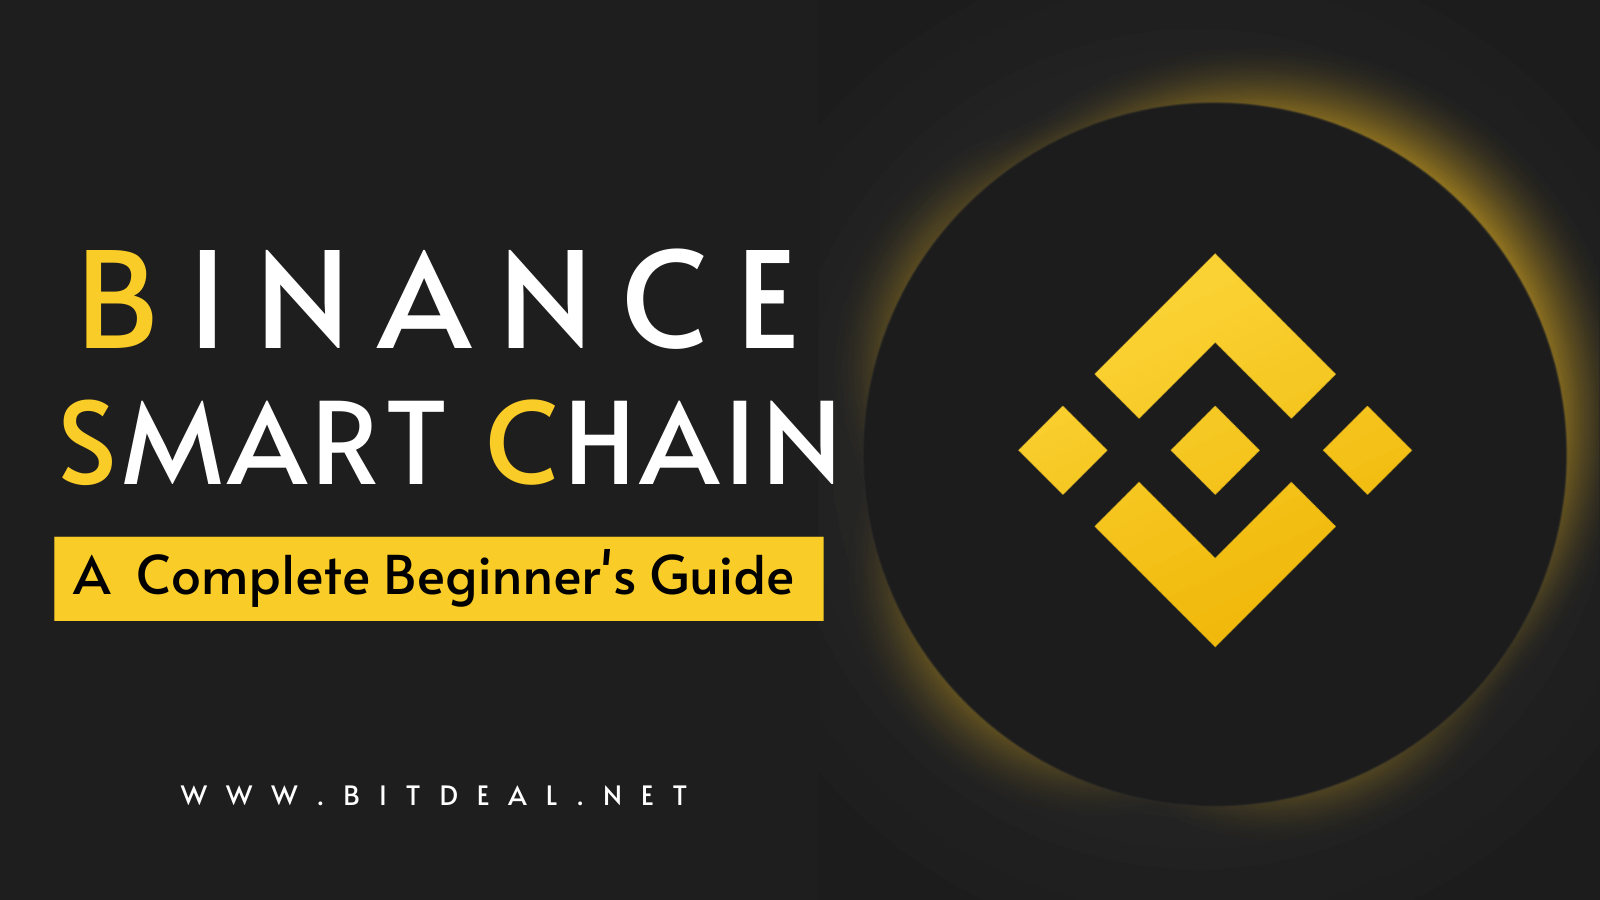 Binance Smart Chain - A Way to Enable Smart Contracts